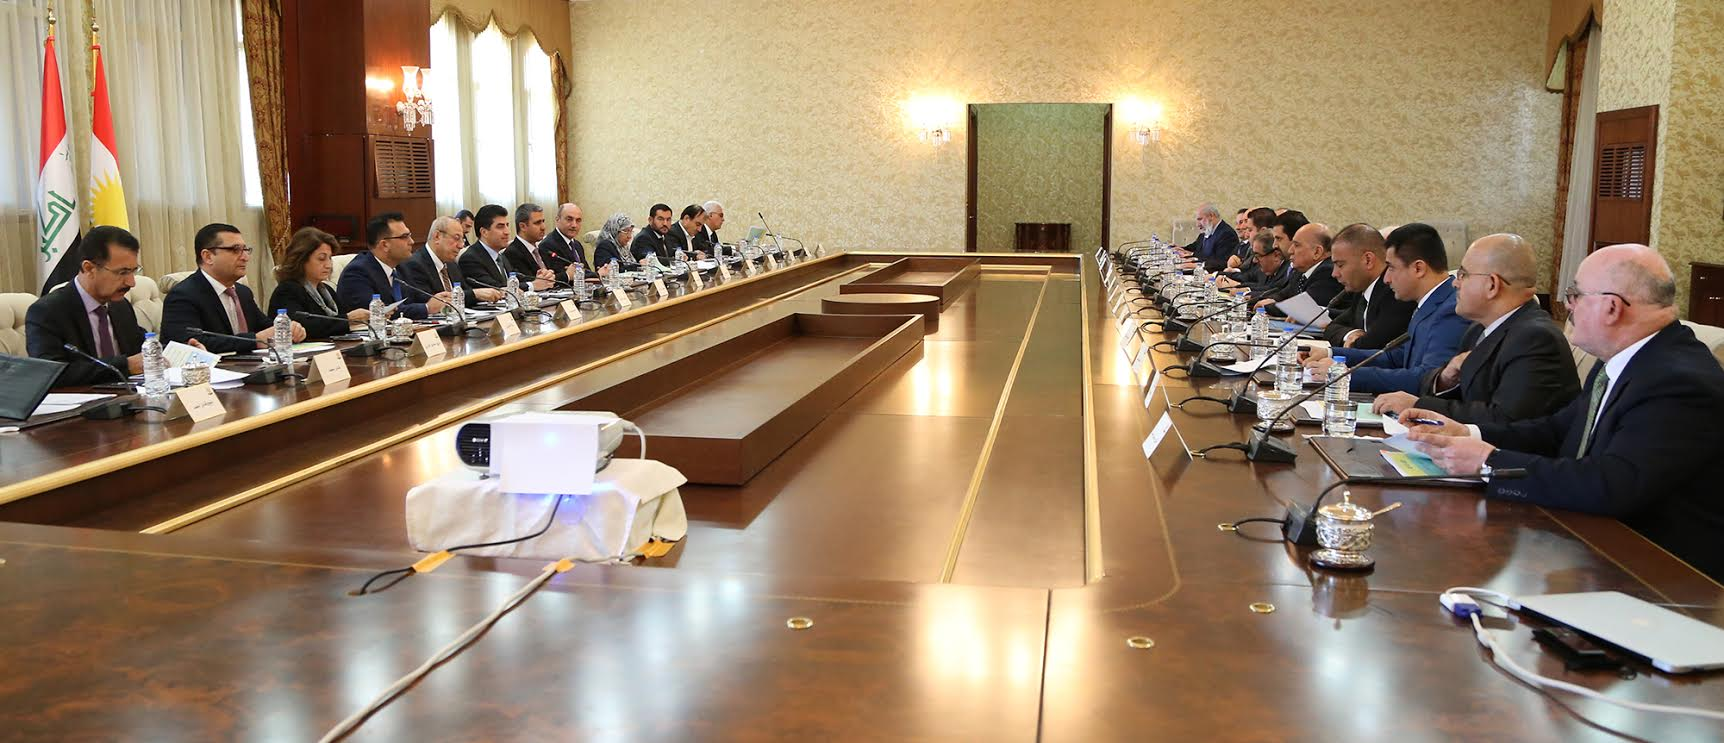 Kurdistan Regional Government and Kurdish representatives in Iraqi Parliament and Government discuss relations with Baghdad